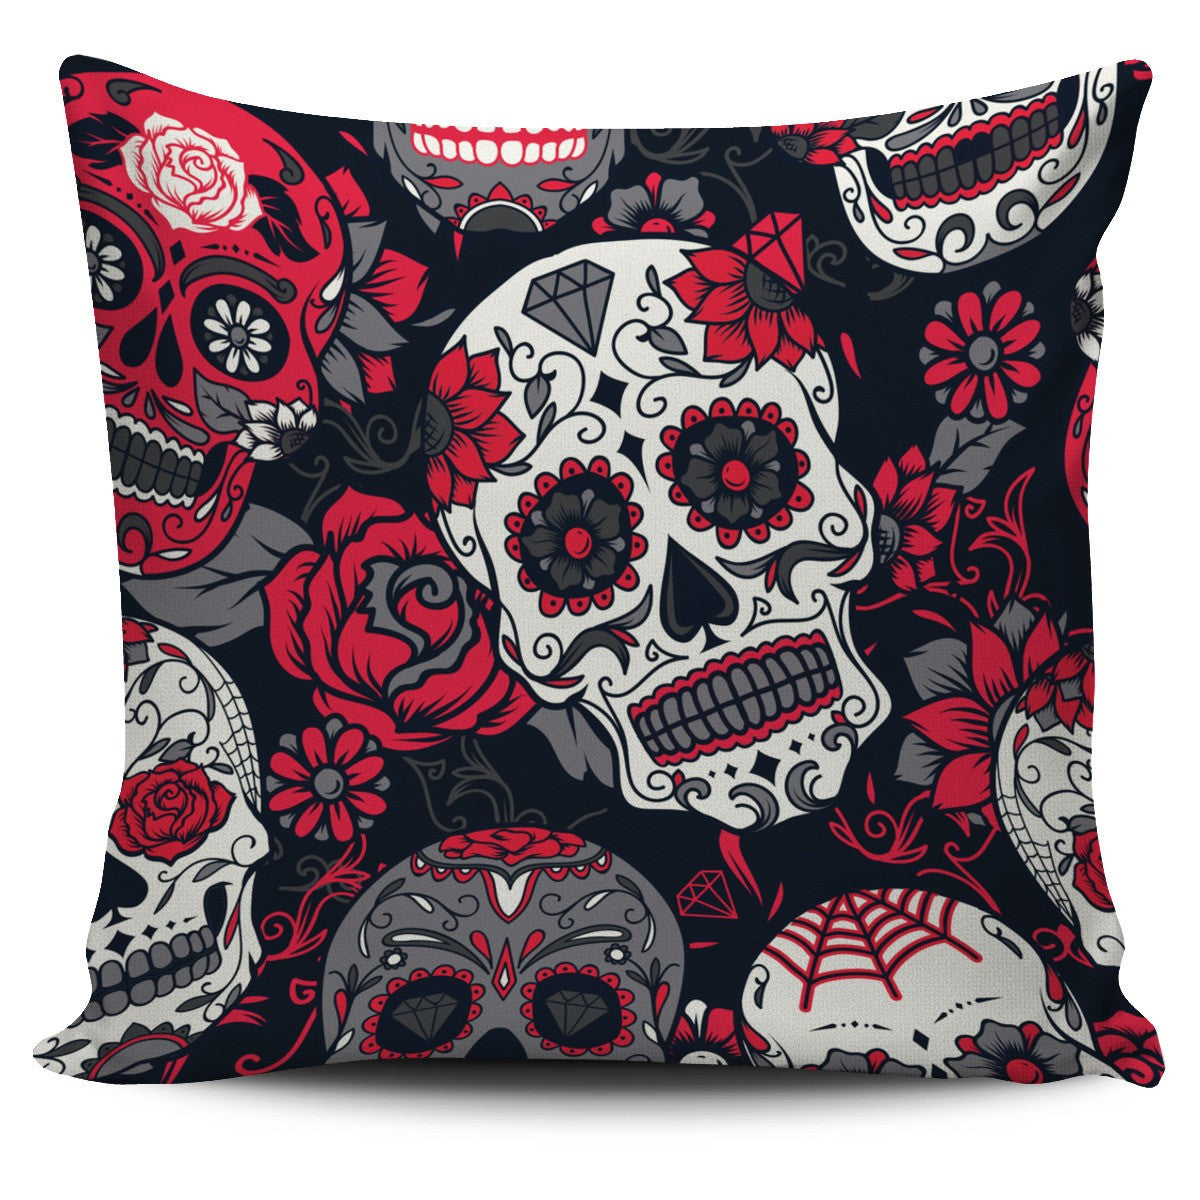 mockup union square pillow artynature jack products arty red